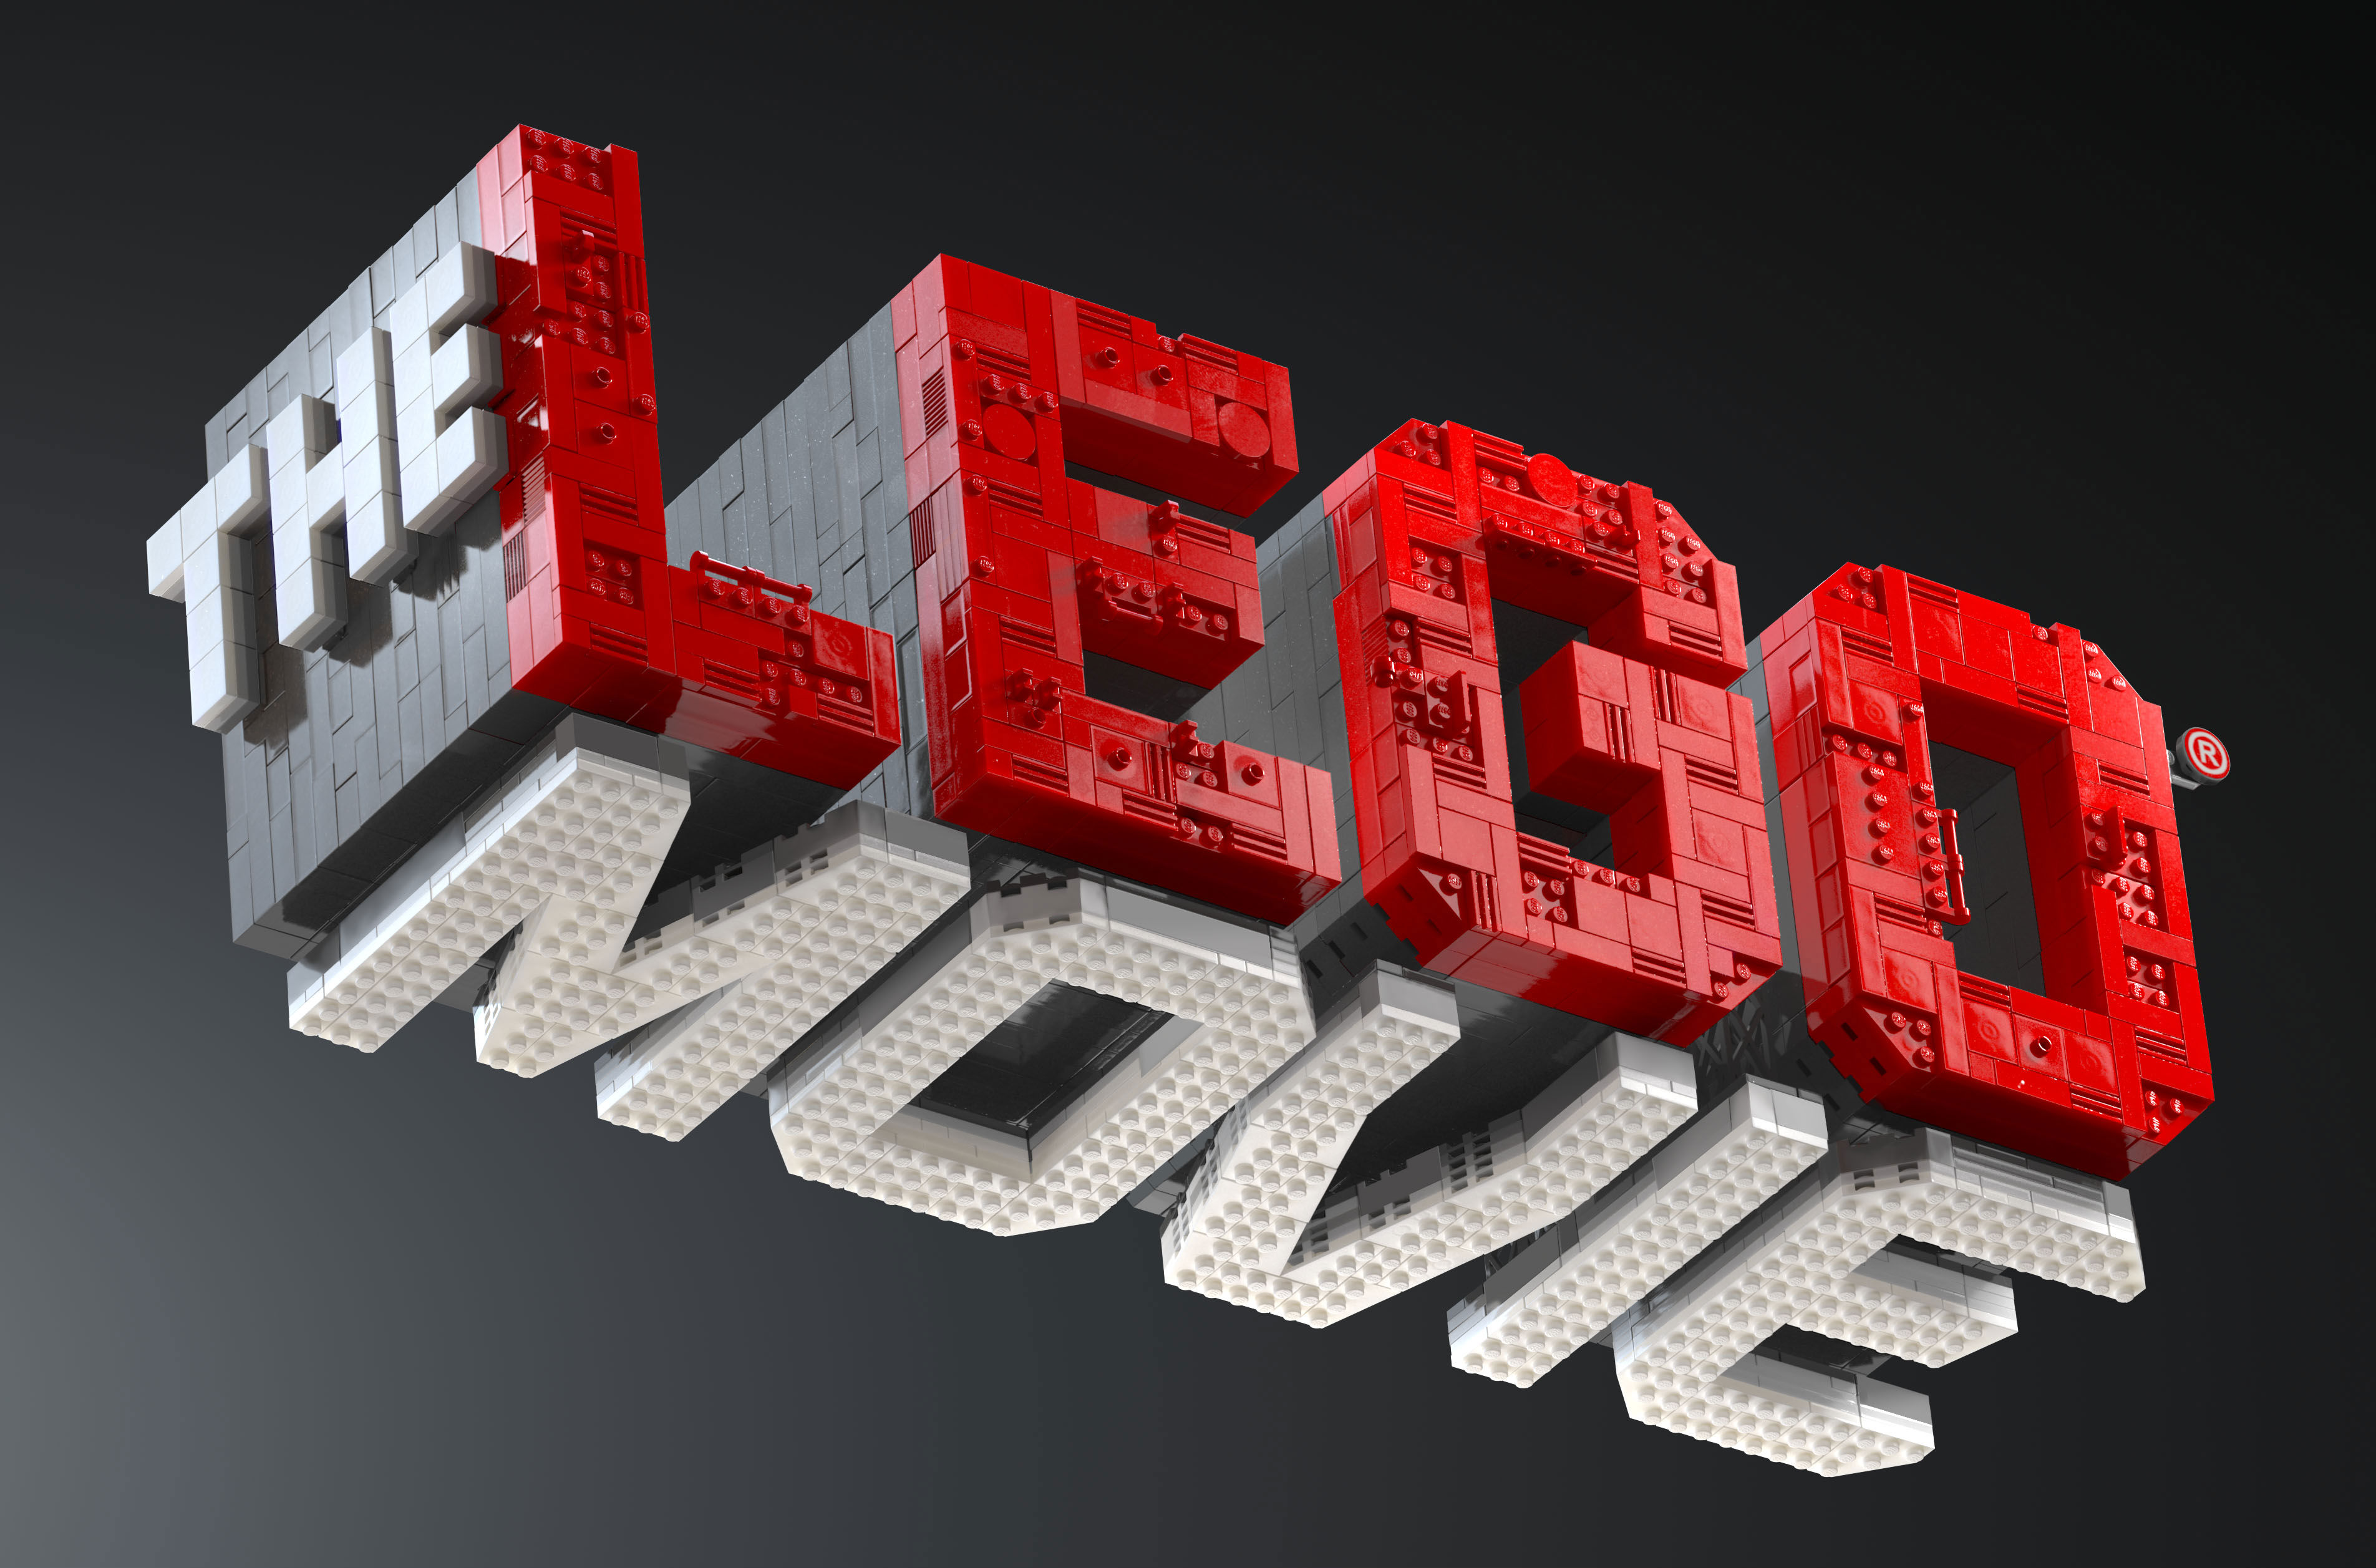 Revealed For  The Lego Movie  From  21 Jump Street  Directors